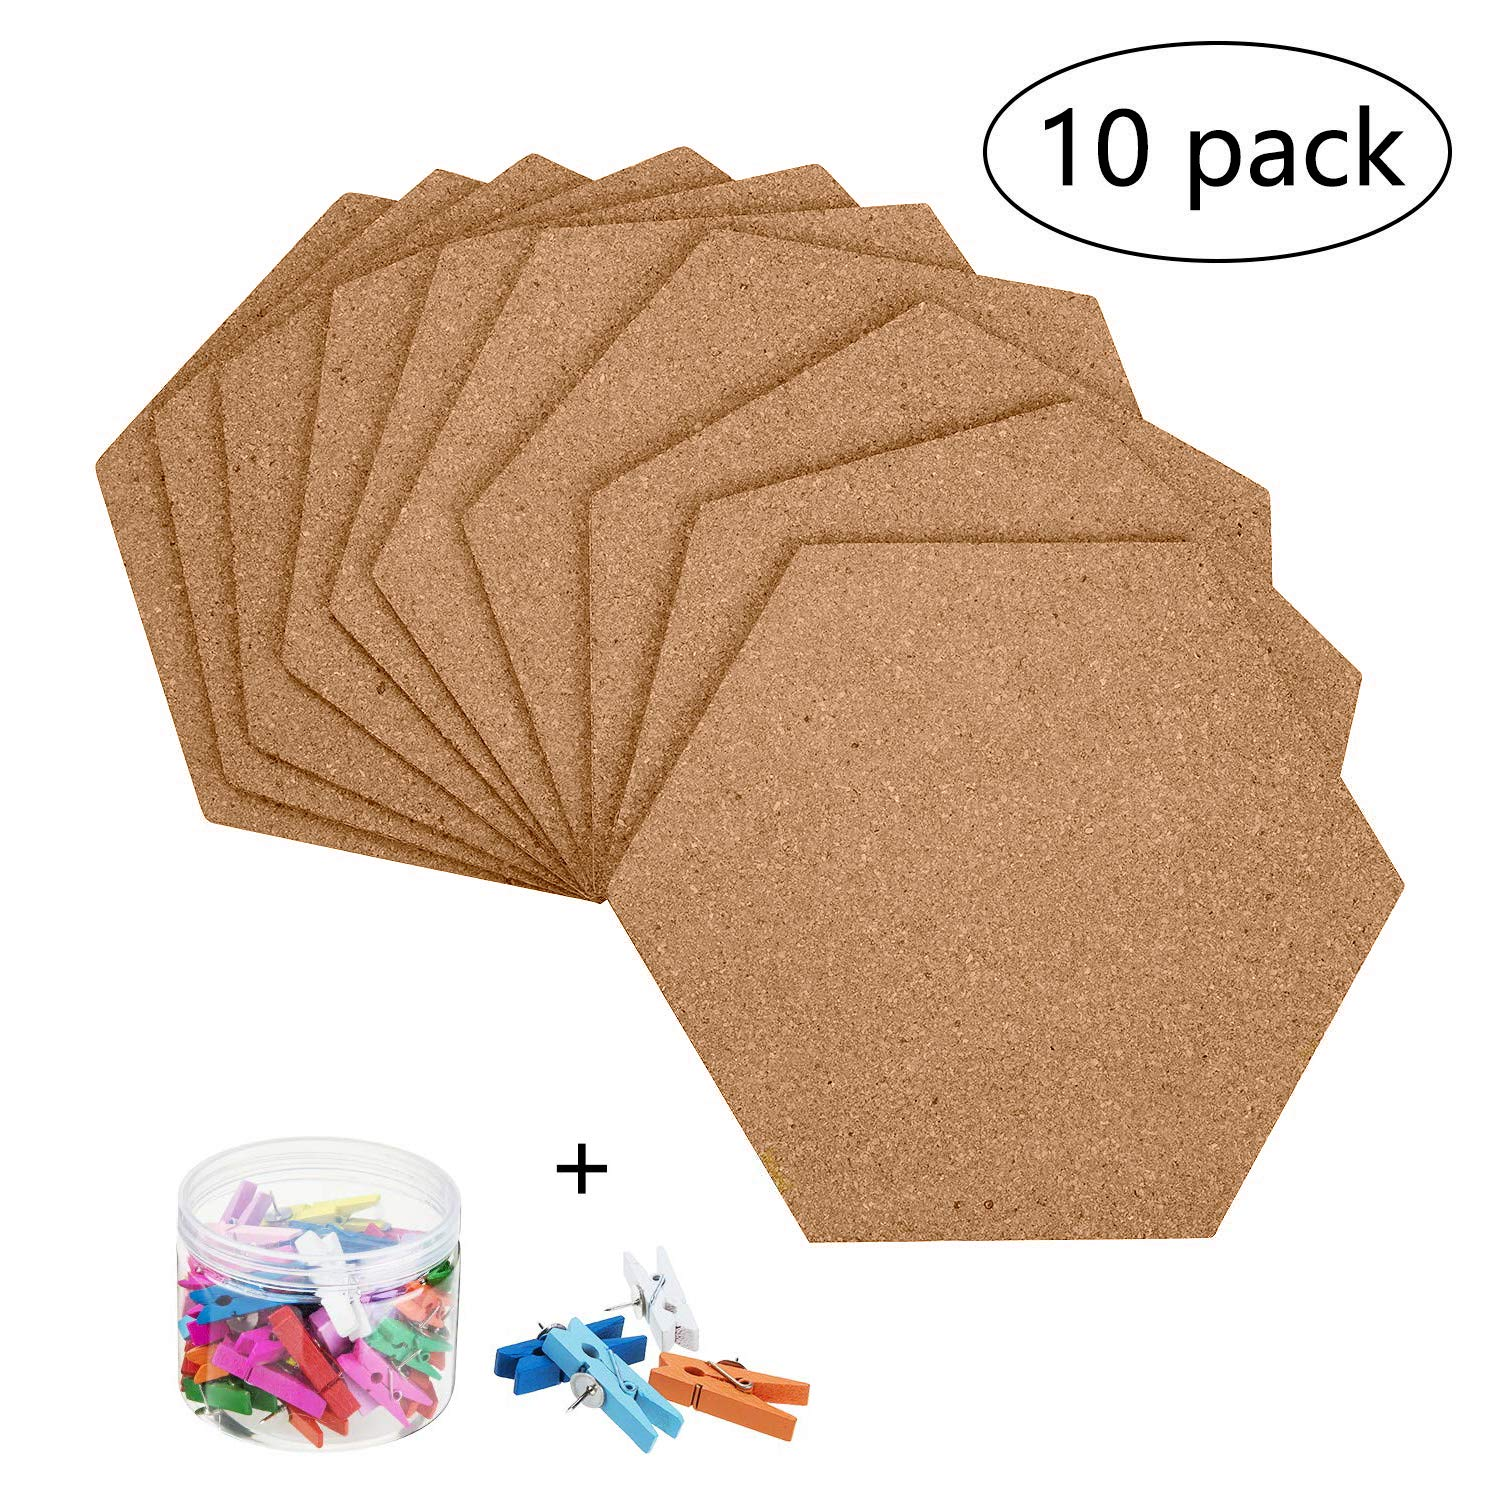 10 Pack Self-Adhesive Cork Board Tiles Mini Wall Bulletin Board with 50 Multi-Color Push Pins 81peHKliW1L